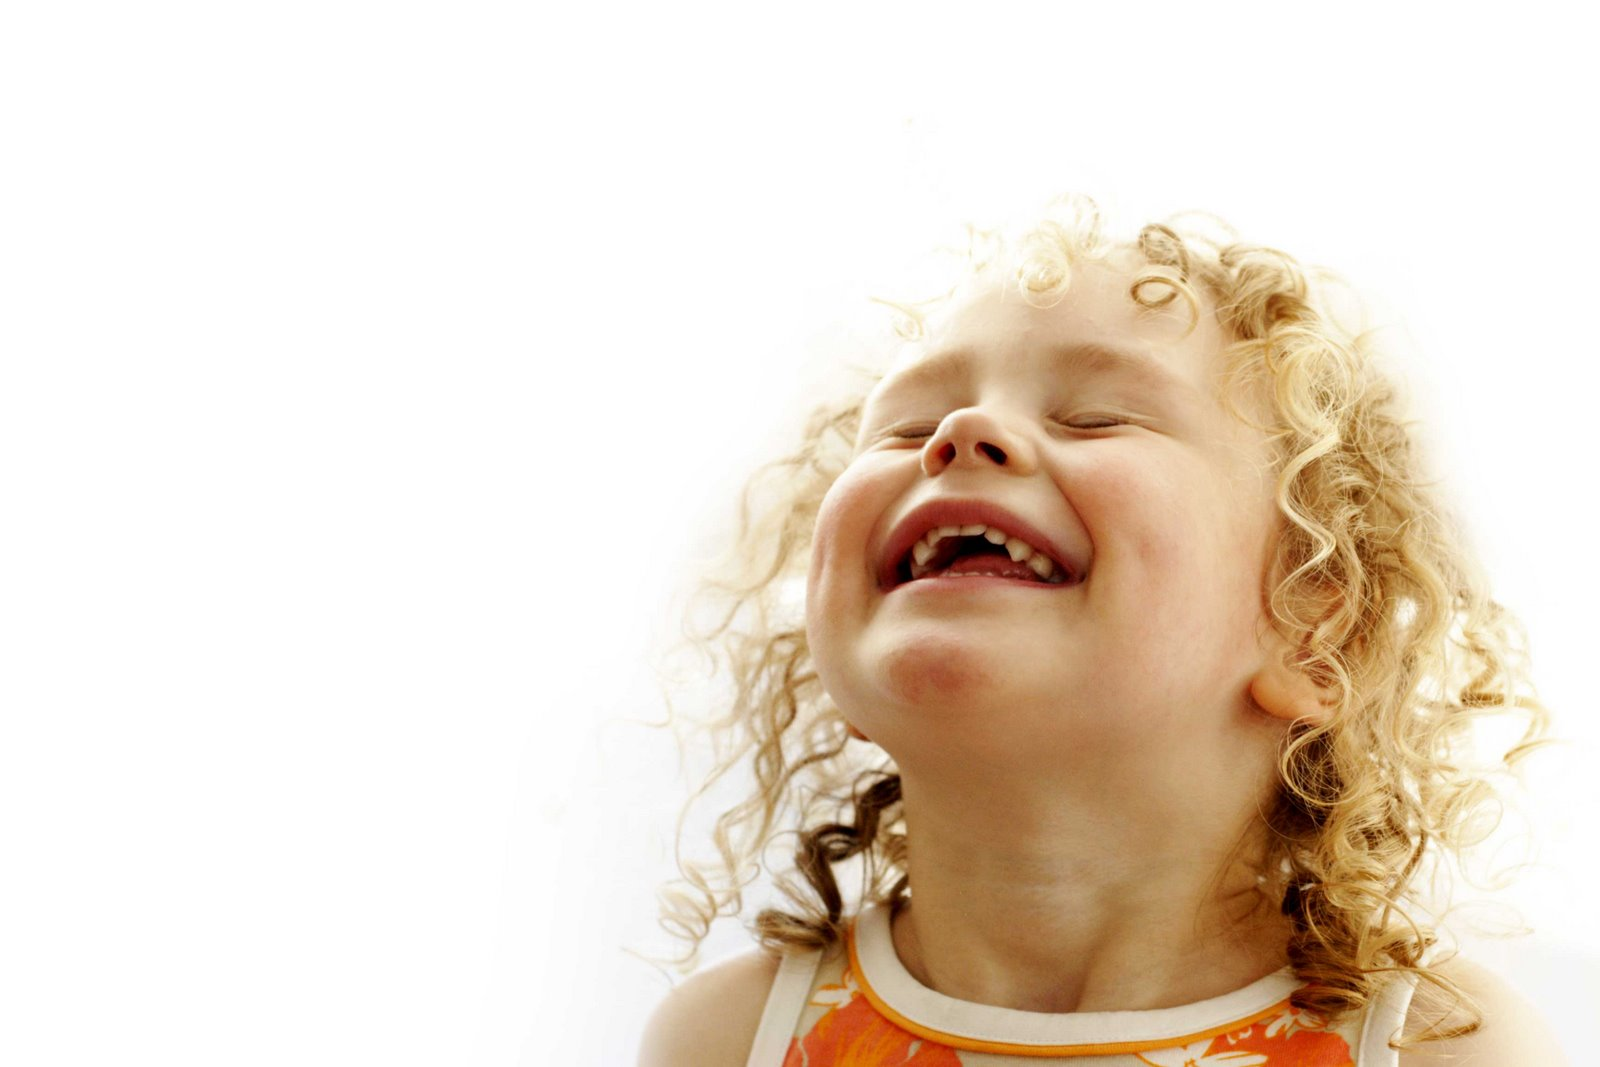 an introduction to the effects of laughter - introduction: the laugh and  - the effects of laughter & the human connection first of all, i have learned from my research that laughter is not the same as humor.